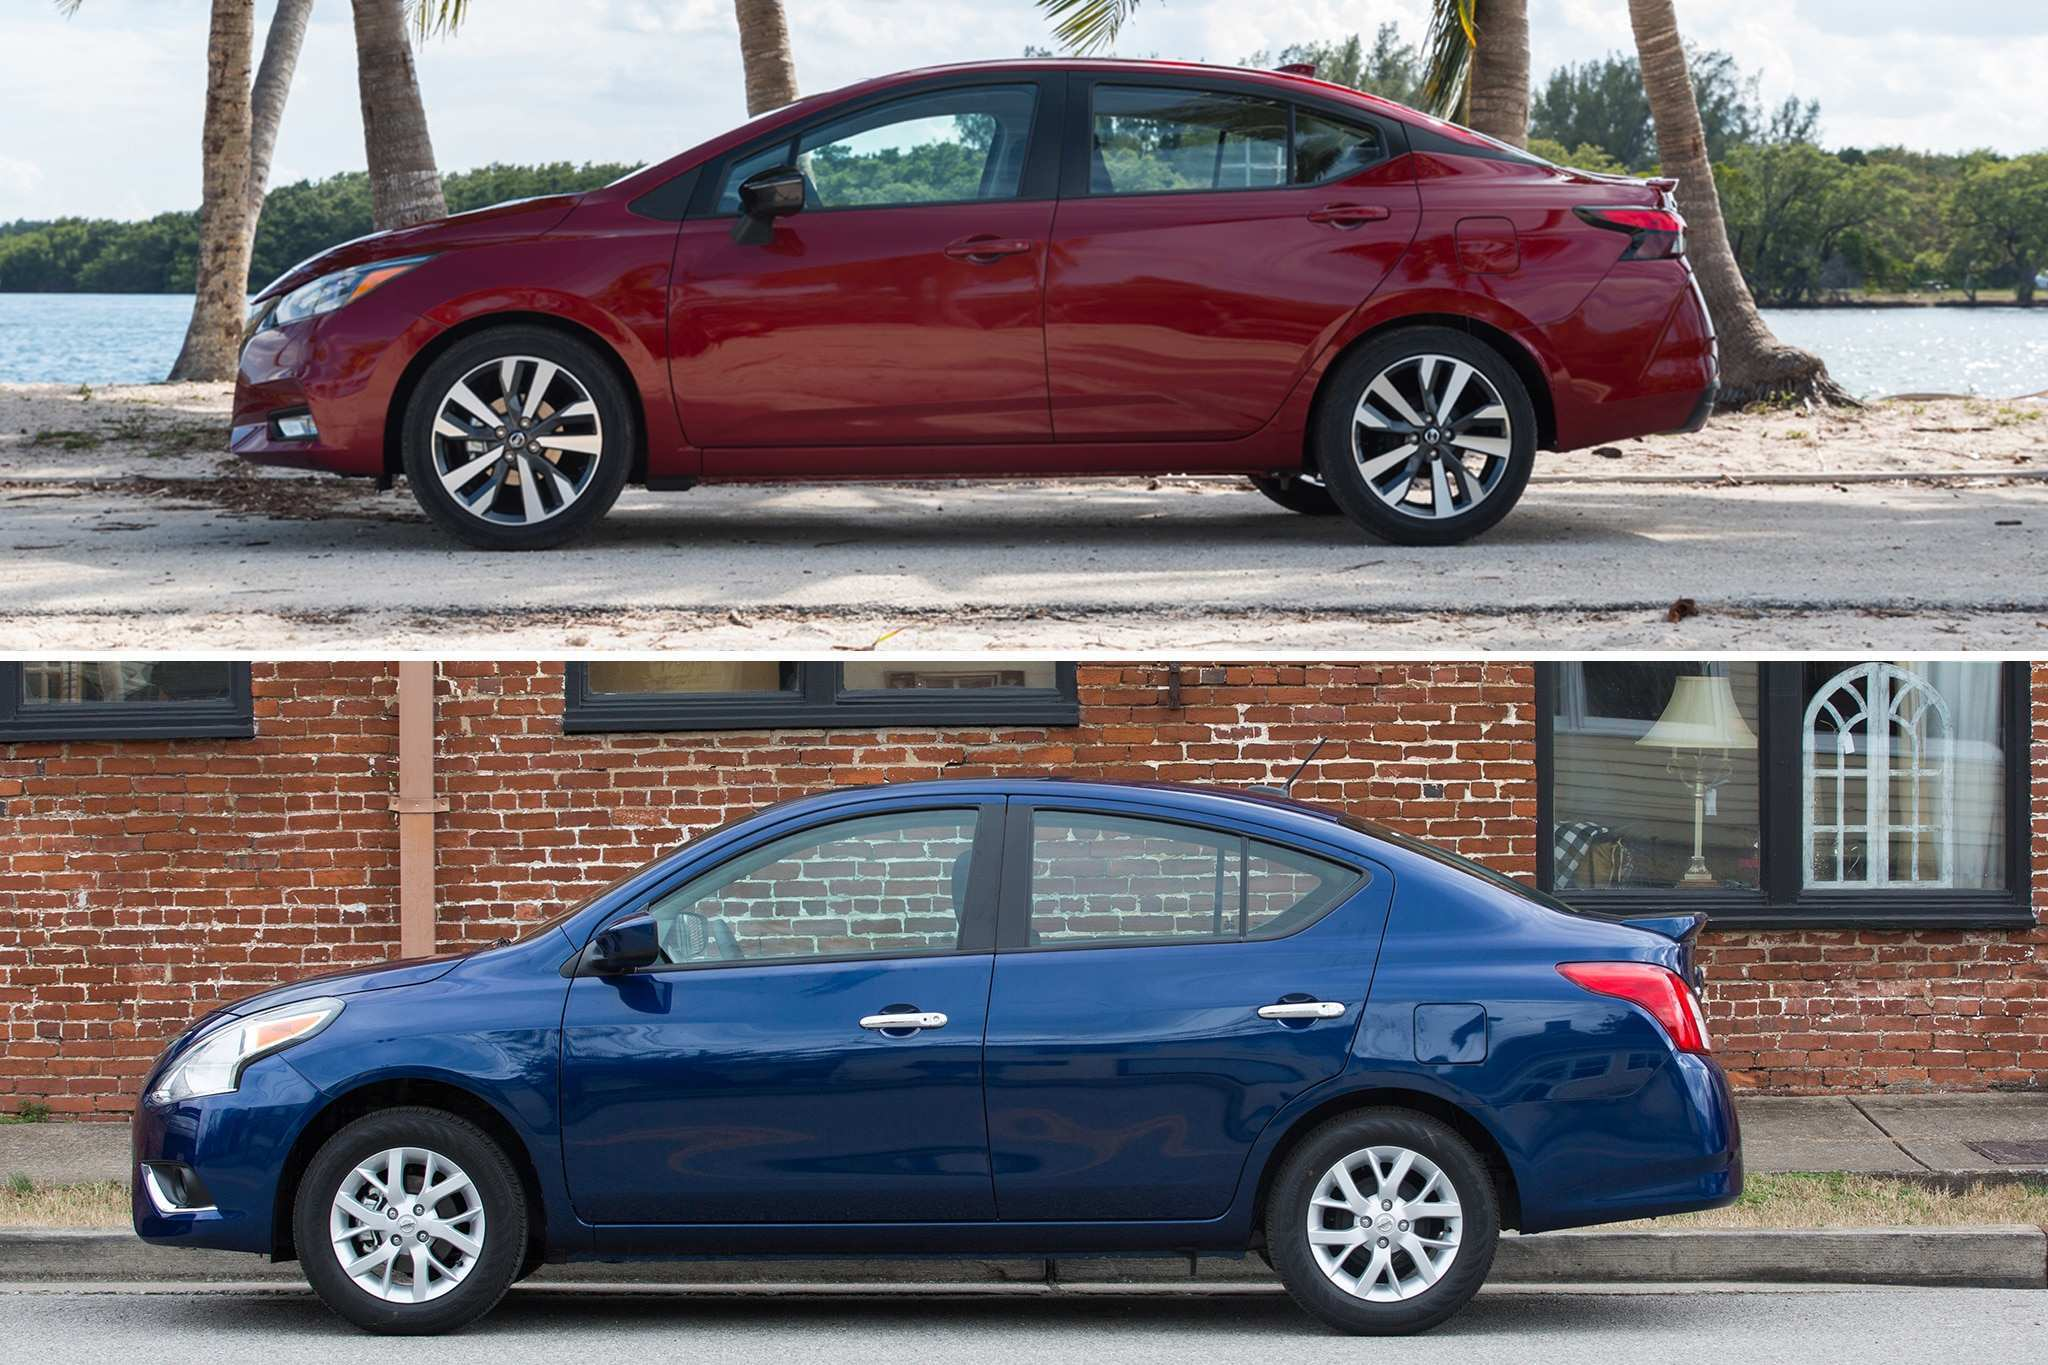 59 A 2020 Nissan Versa Price Design And Review